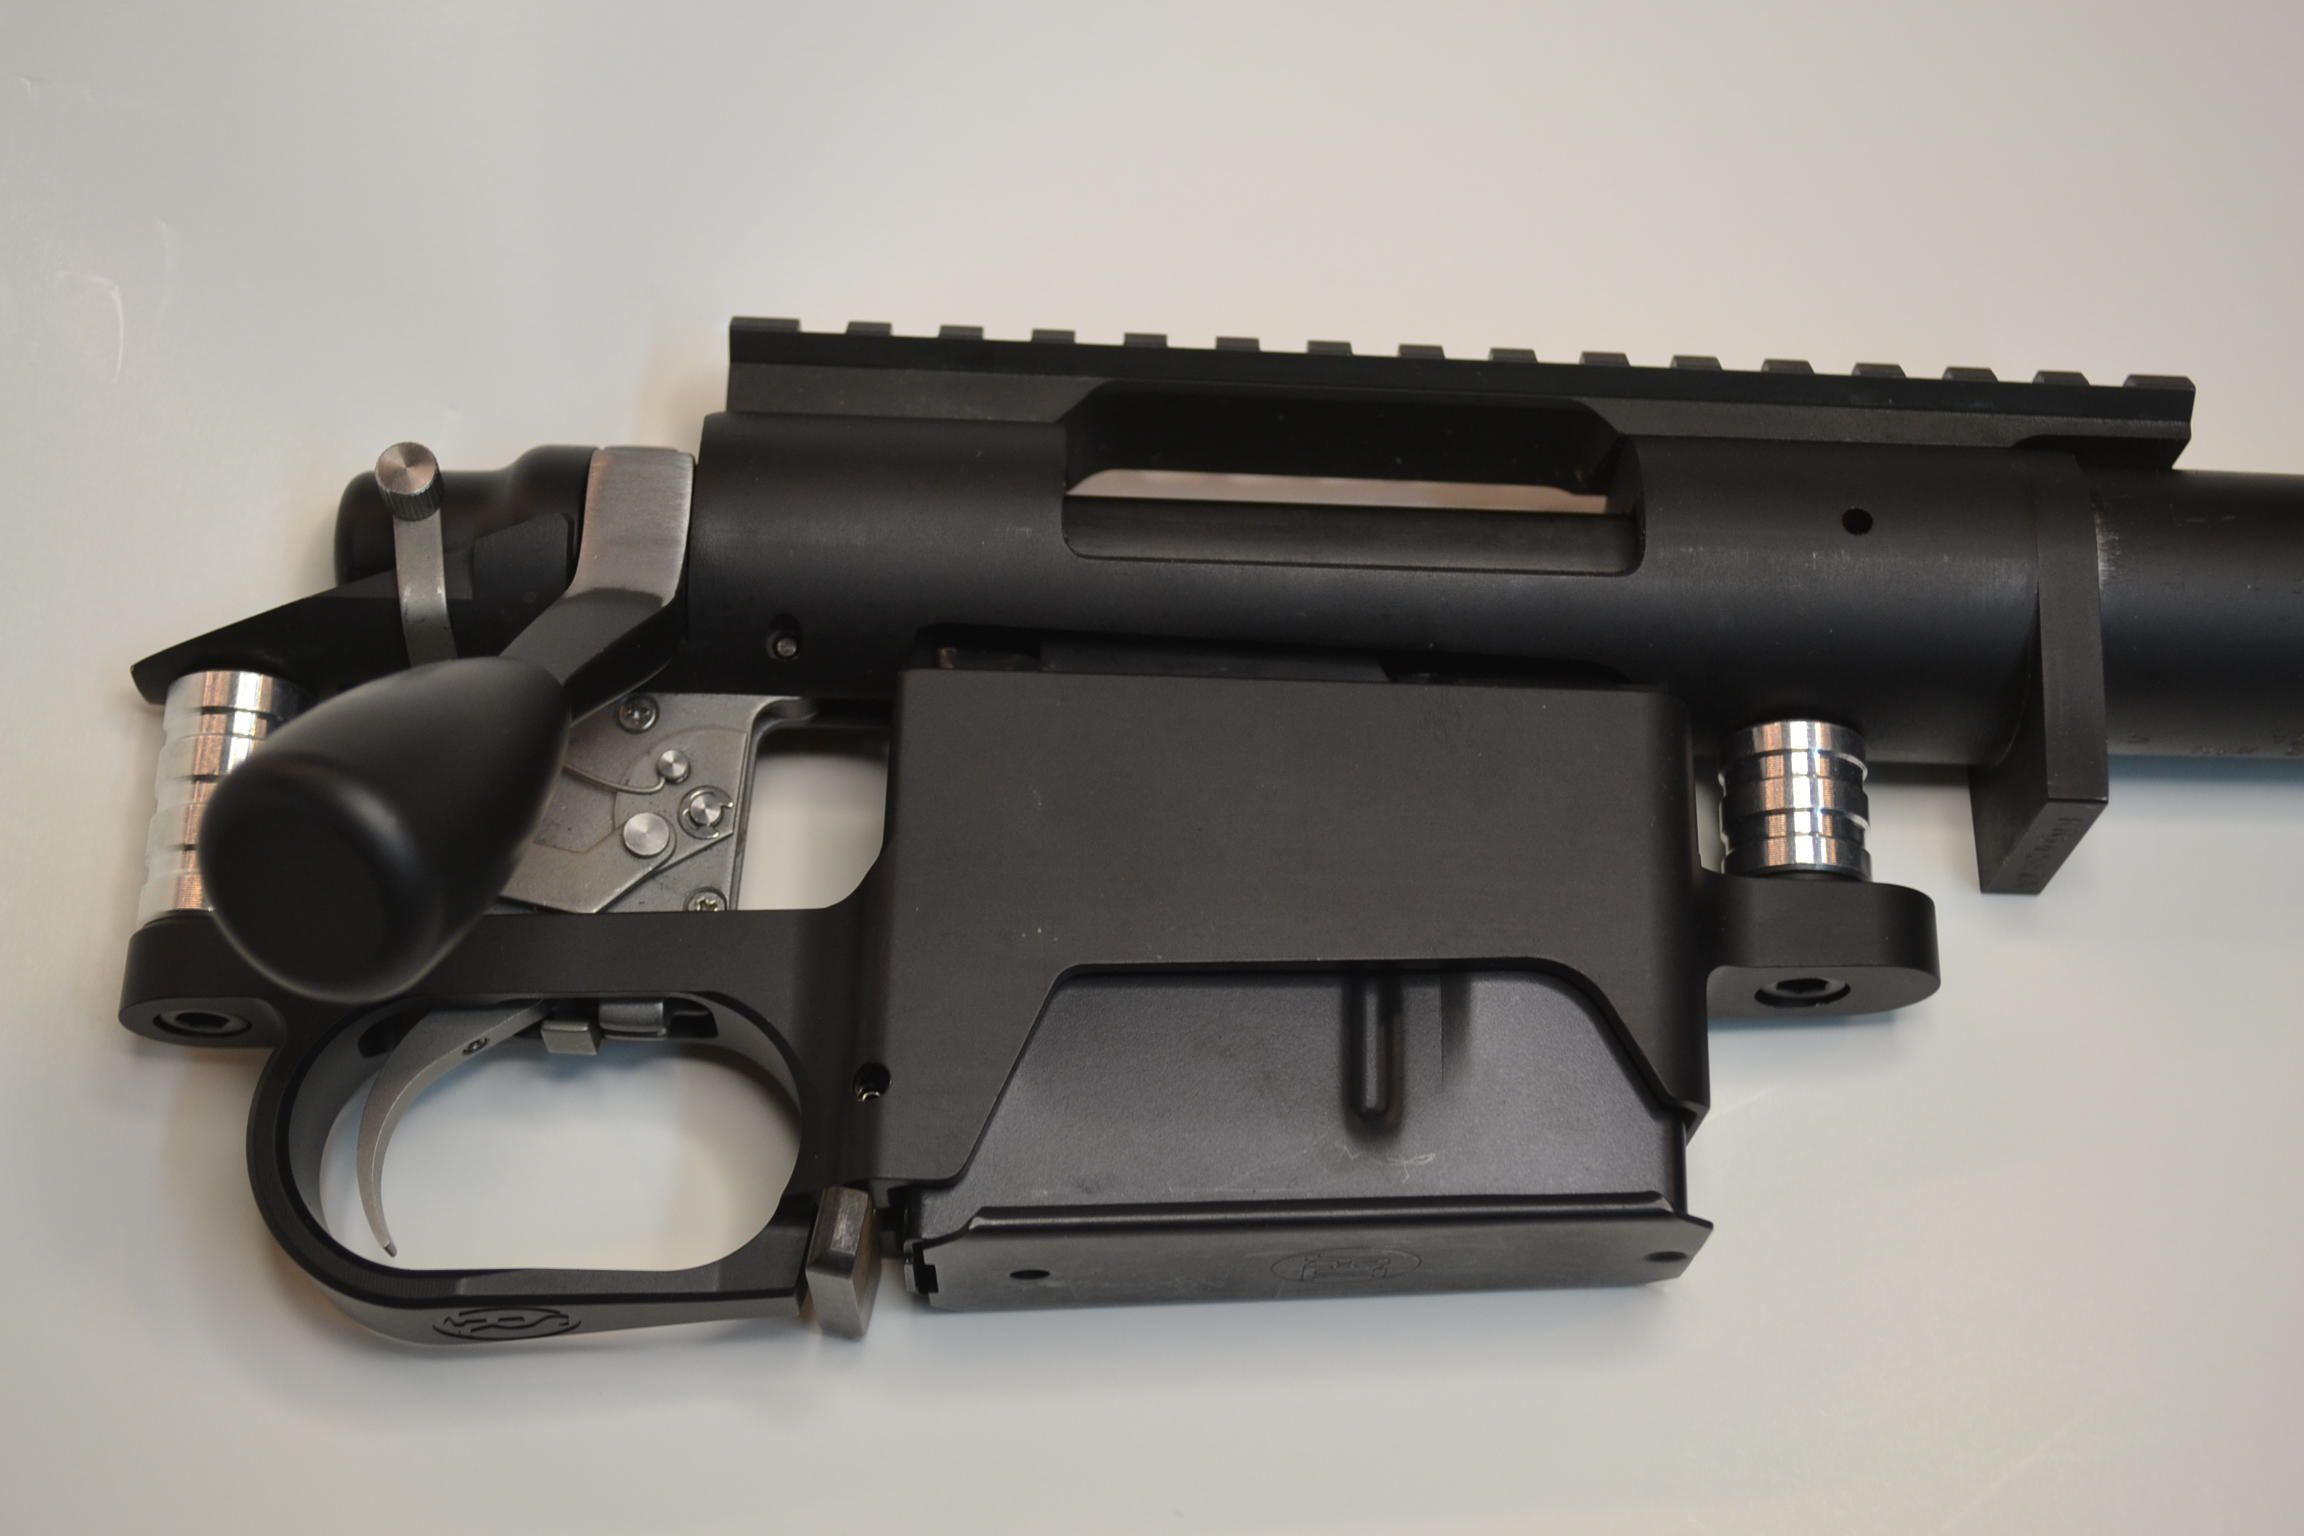 Add a detachable magazine to your Remington 700 by installing Surgeon bottom metal